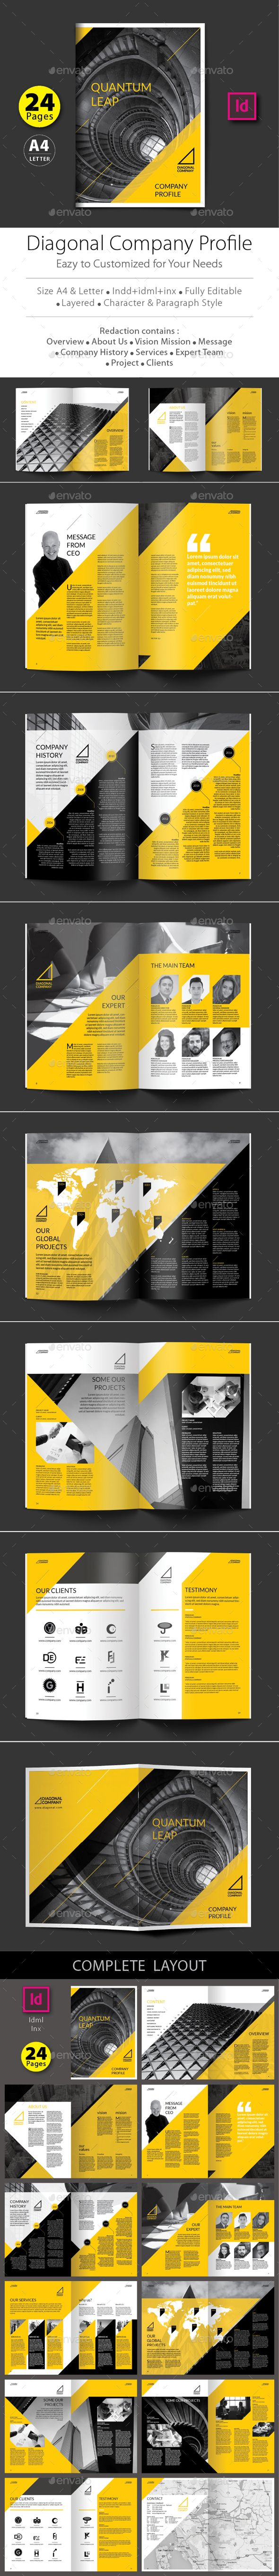 Diagonal Company Profile Design Template InDesign INDD. Download here: http://graphicriver.net/item/diagonal-company-profile-design-template/15855751?ref=ksioks